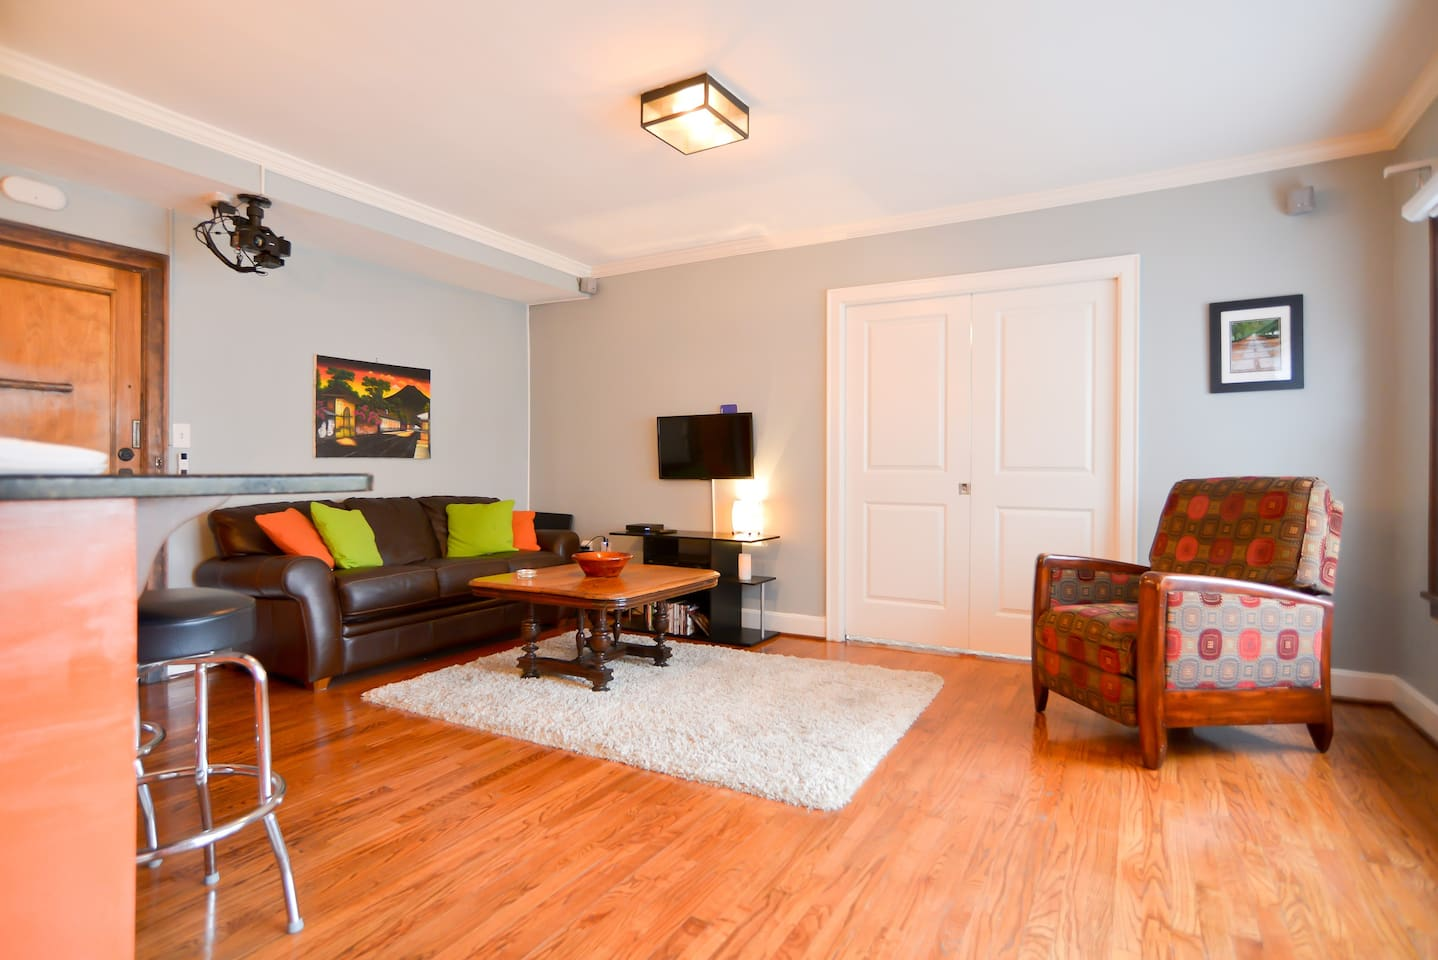 Comfortable living area with open kitchen. Pocket doors lead to master bedroom